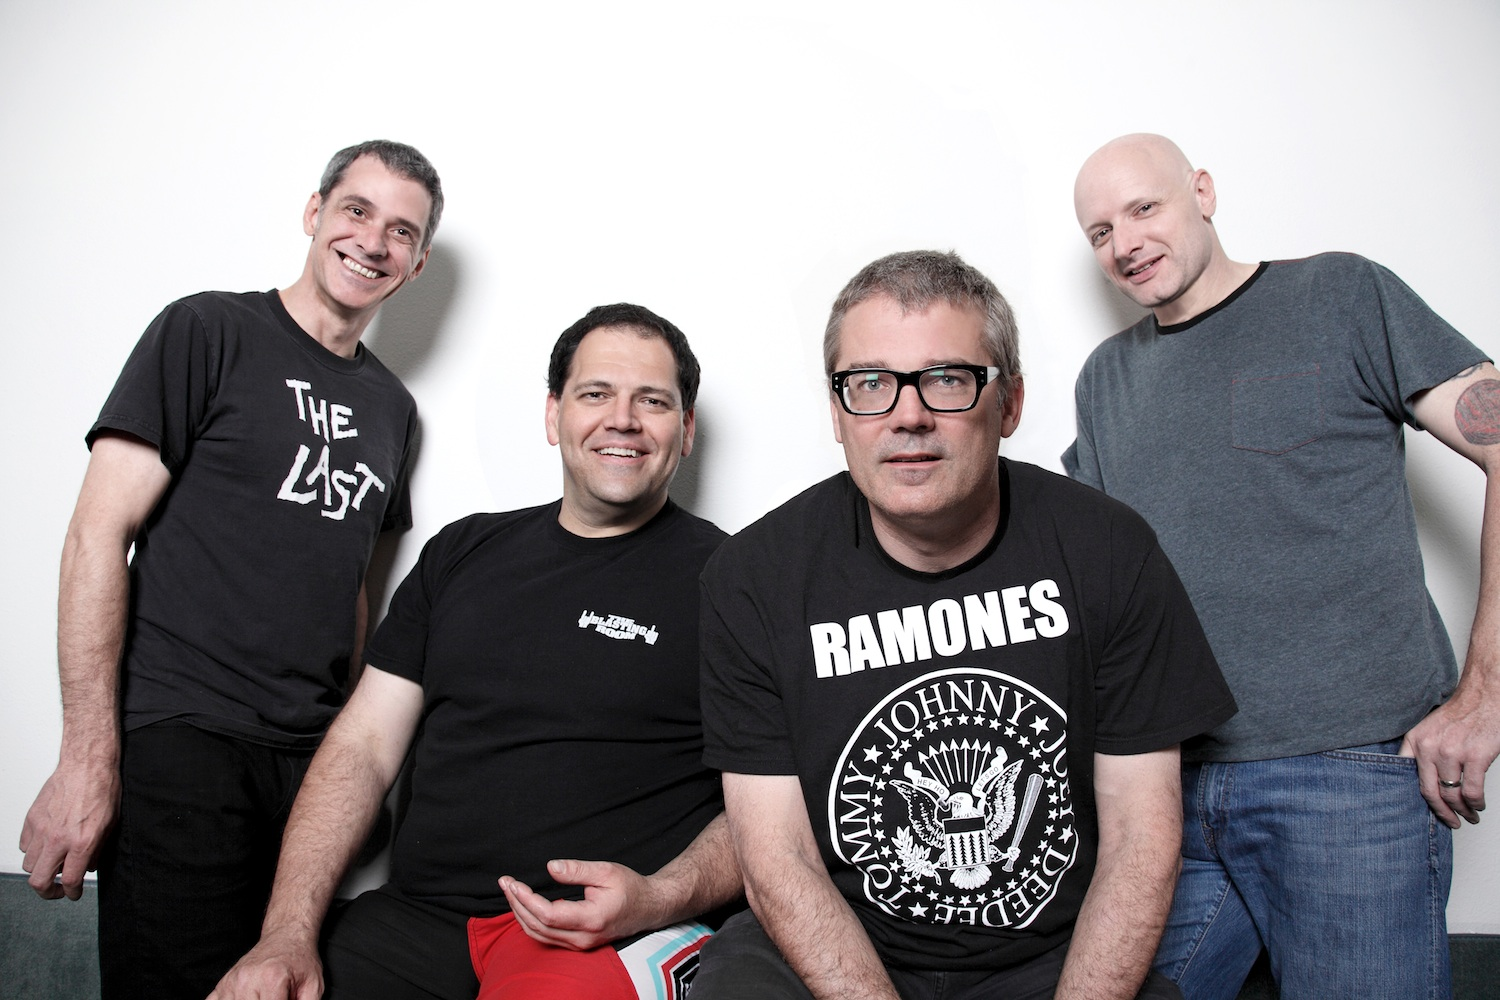 Descendents. April 2011. Photo By Lisa Johnson Rock Photographer. ALL RIGHTS RESERVED. http://www.lisajohnsonphoto.com